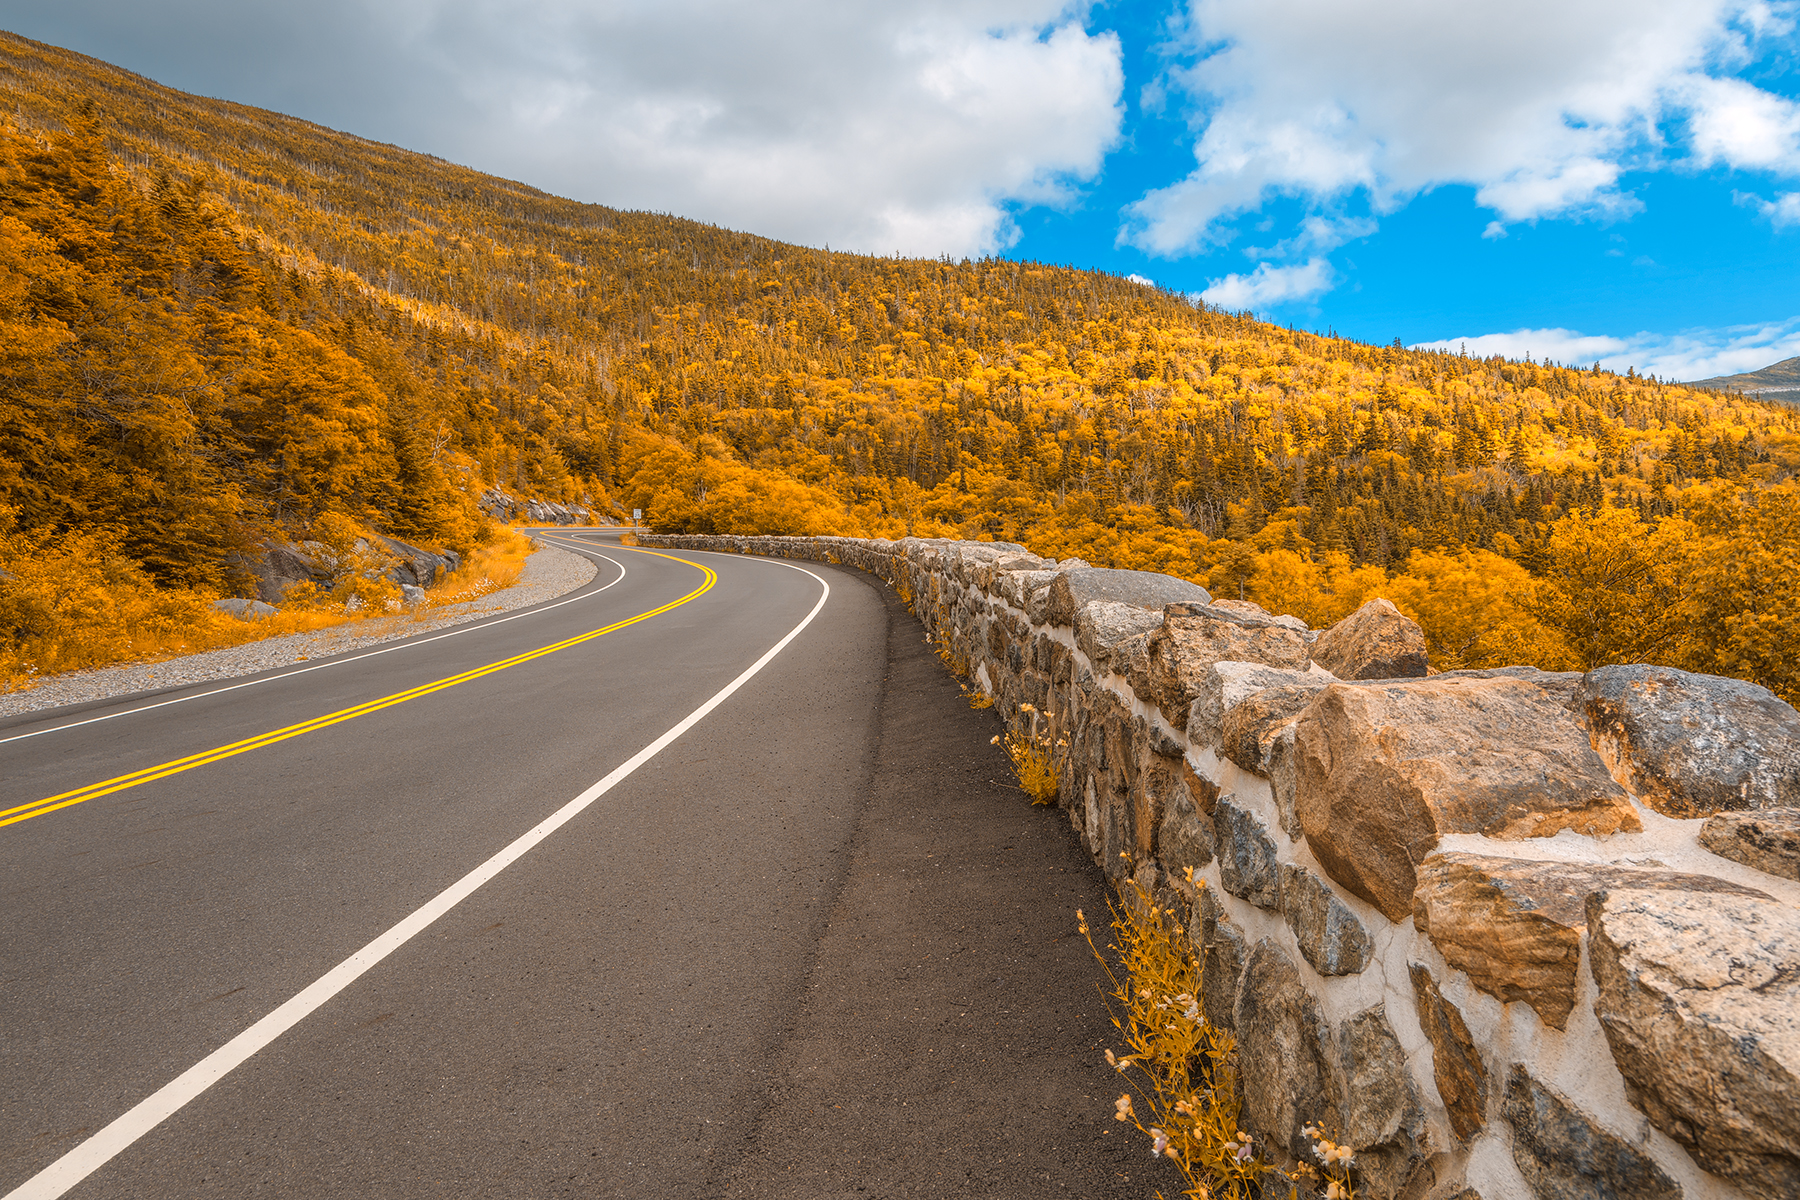 Goldface mountain road - hdr photo